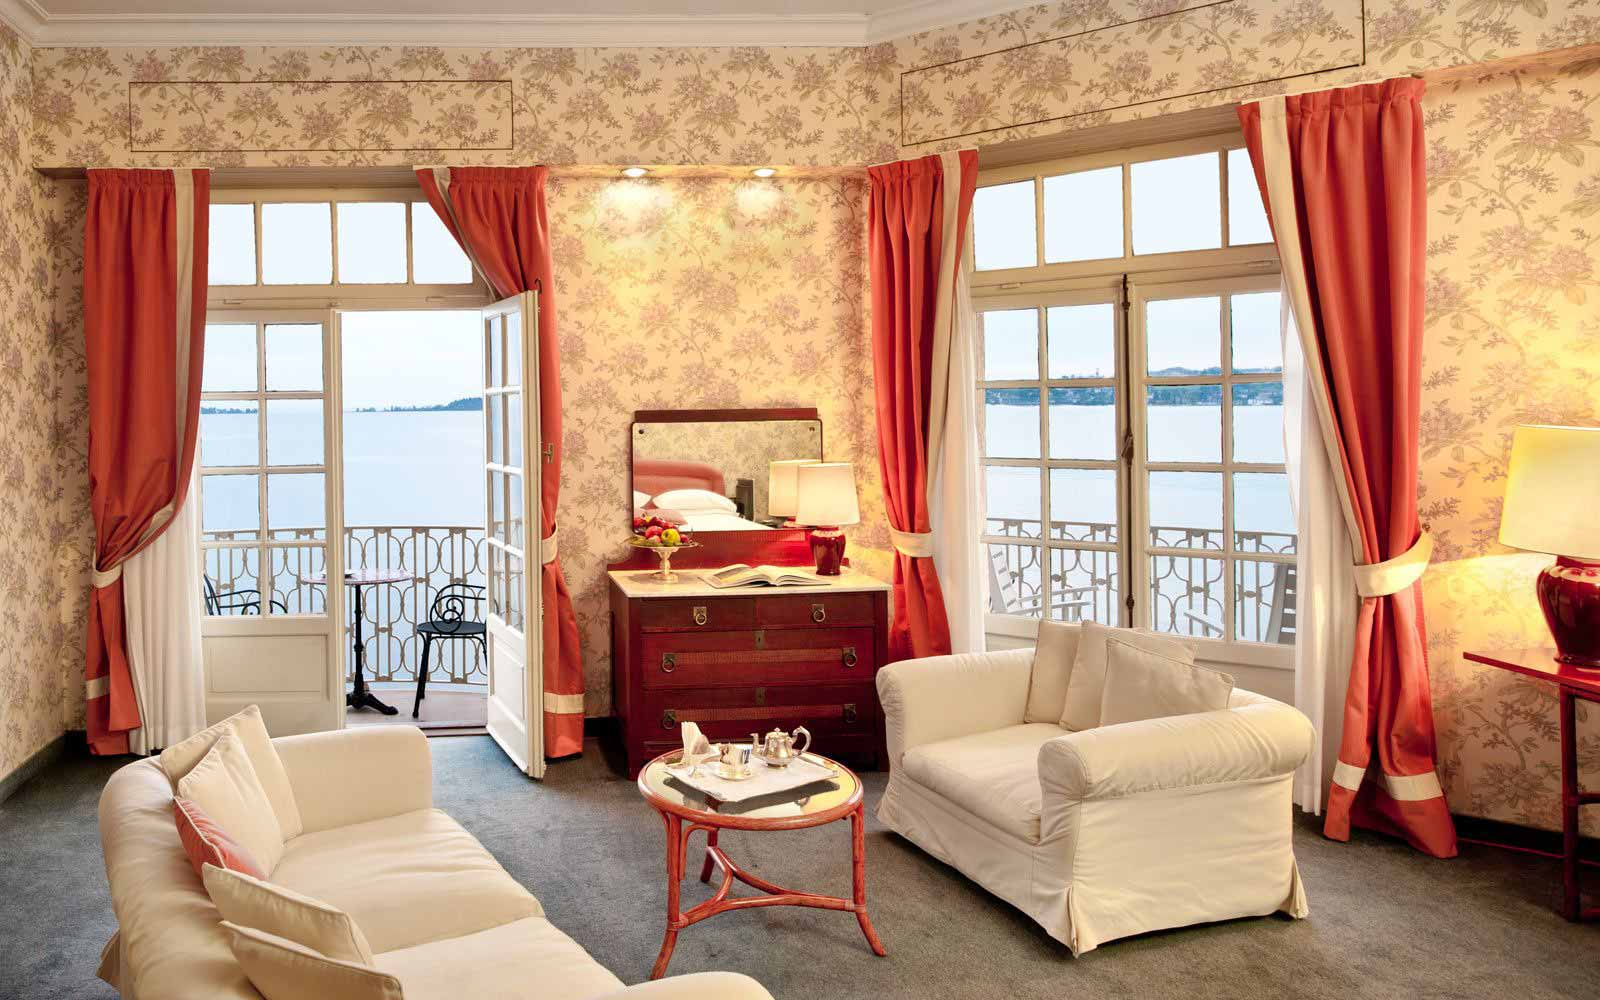 Junior suite at Grand Hotel Gardone